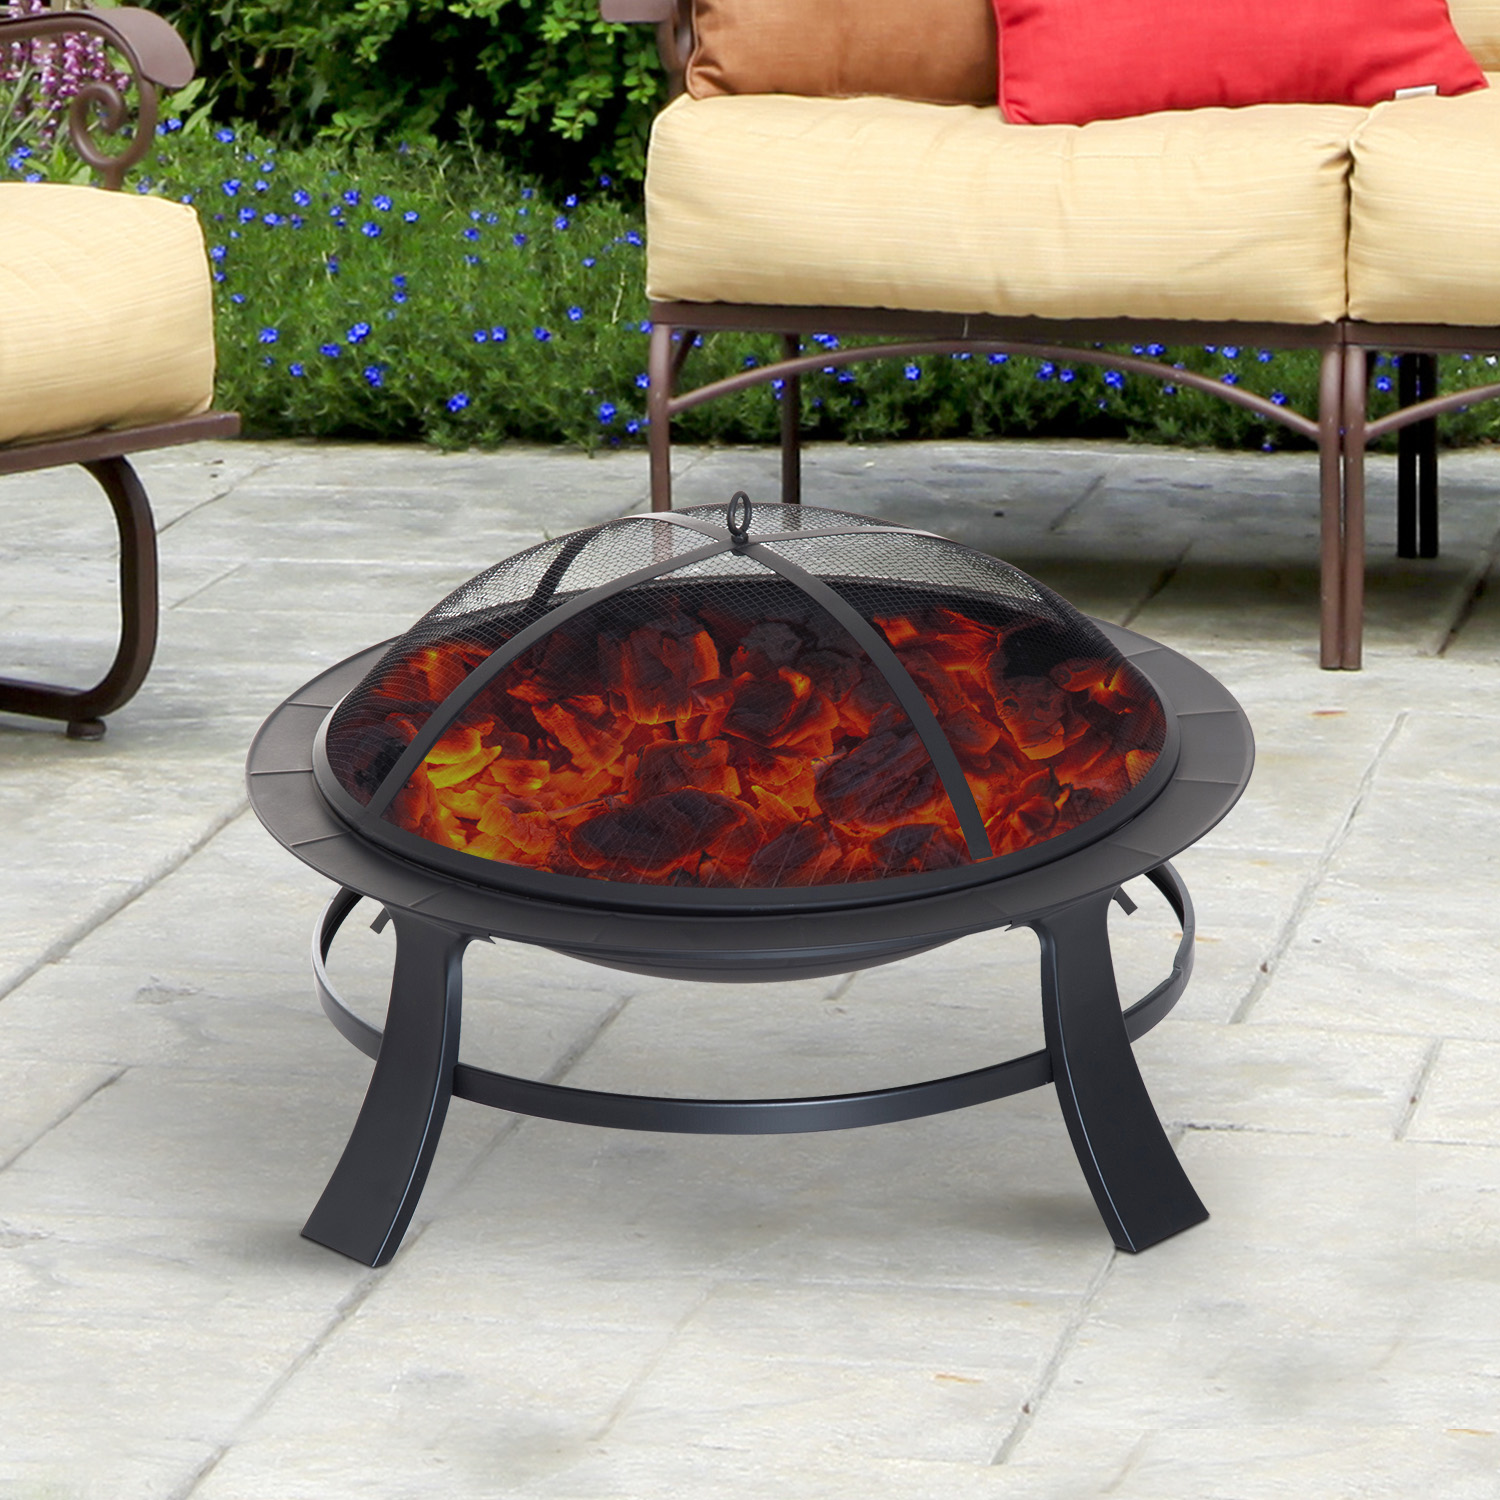 "Image of CAD $89.99 Outsunny 30"" Round Firepit Backyard Portable Fireplace Patio Stove with Poker and Spark Screen / Garden Wood Burning Black Fire Pit Porch w/ Canada 25093585999"